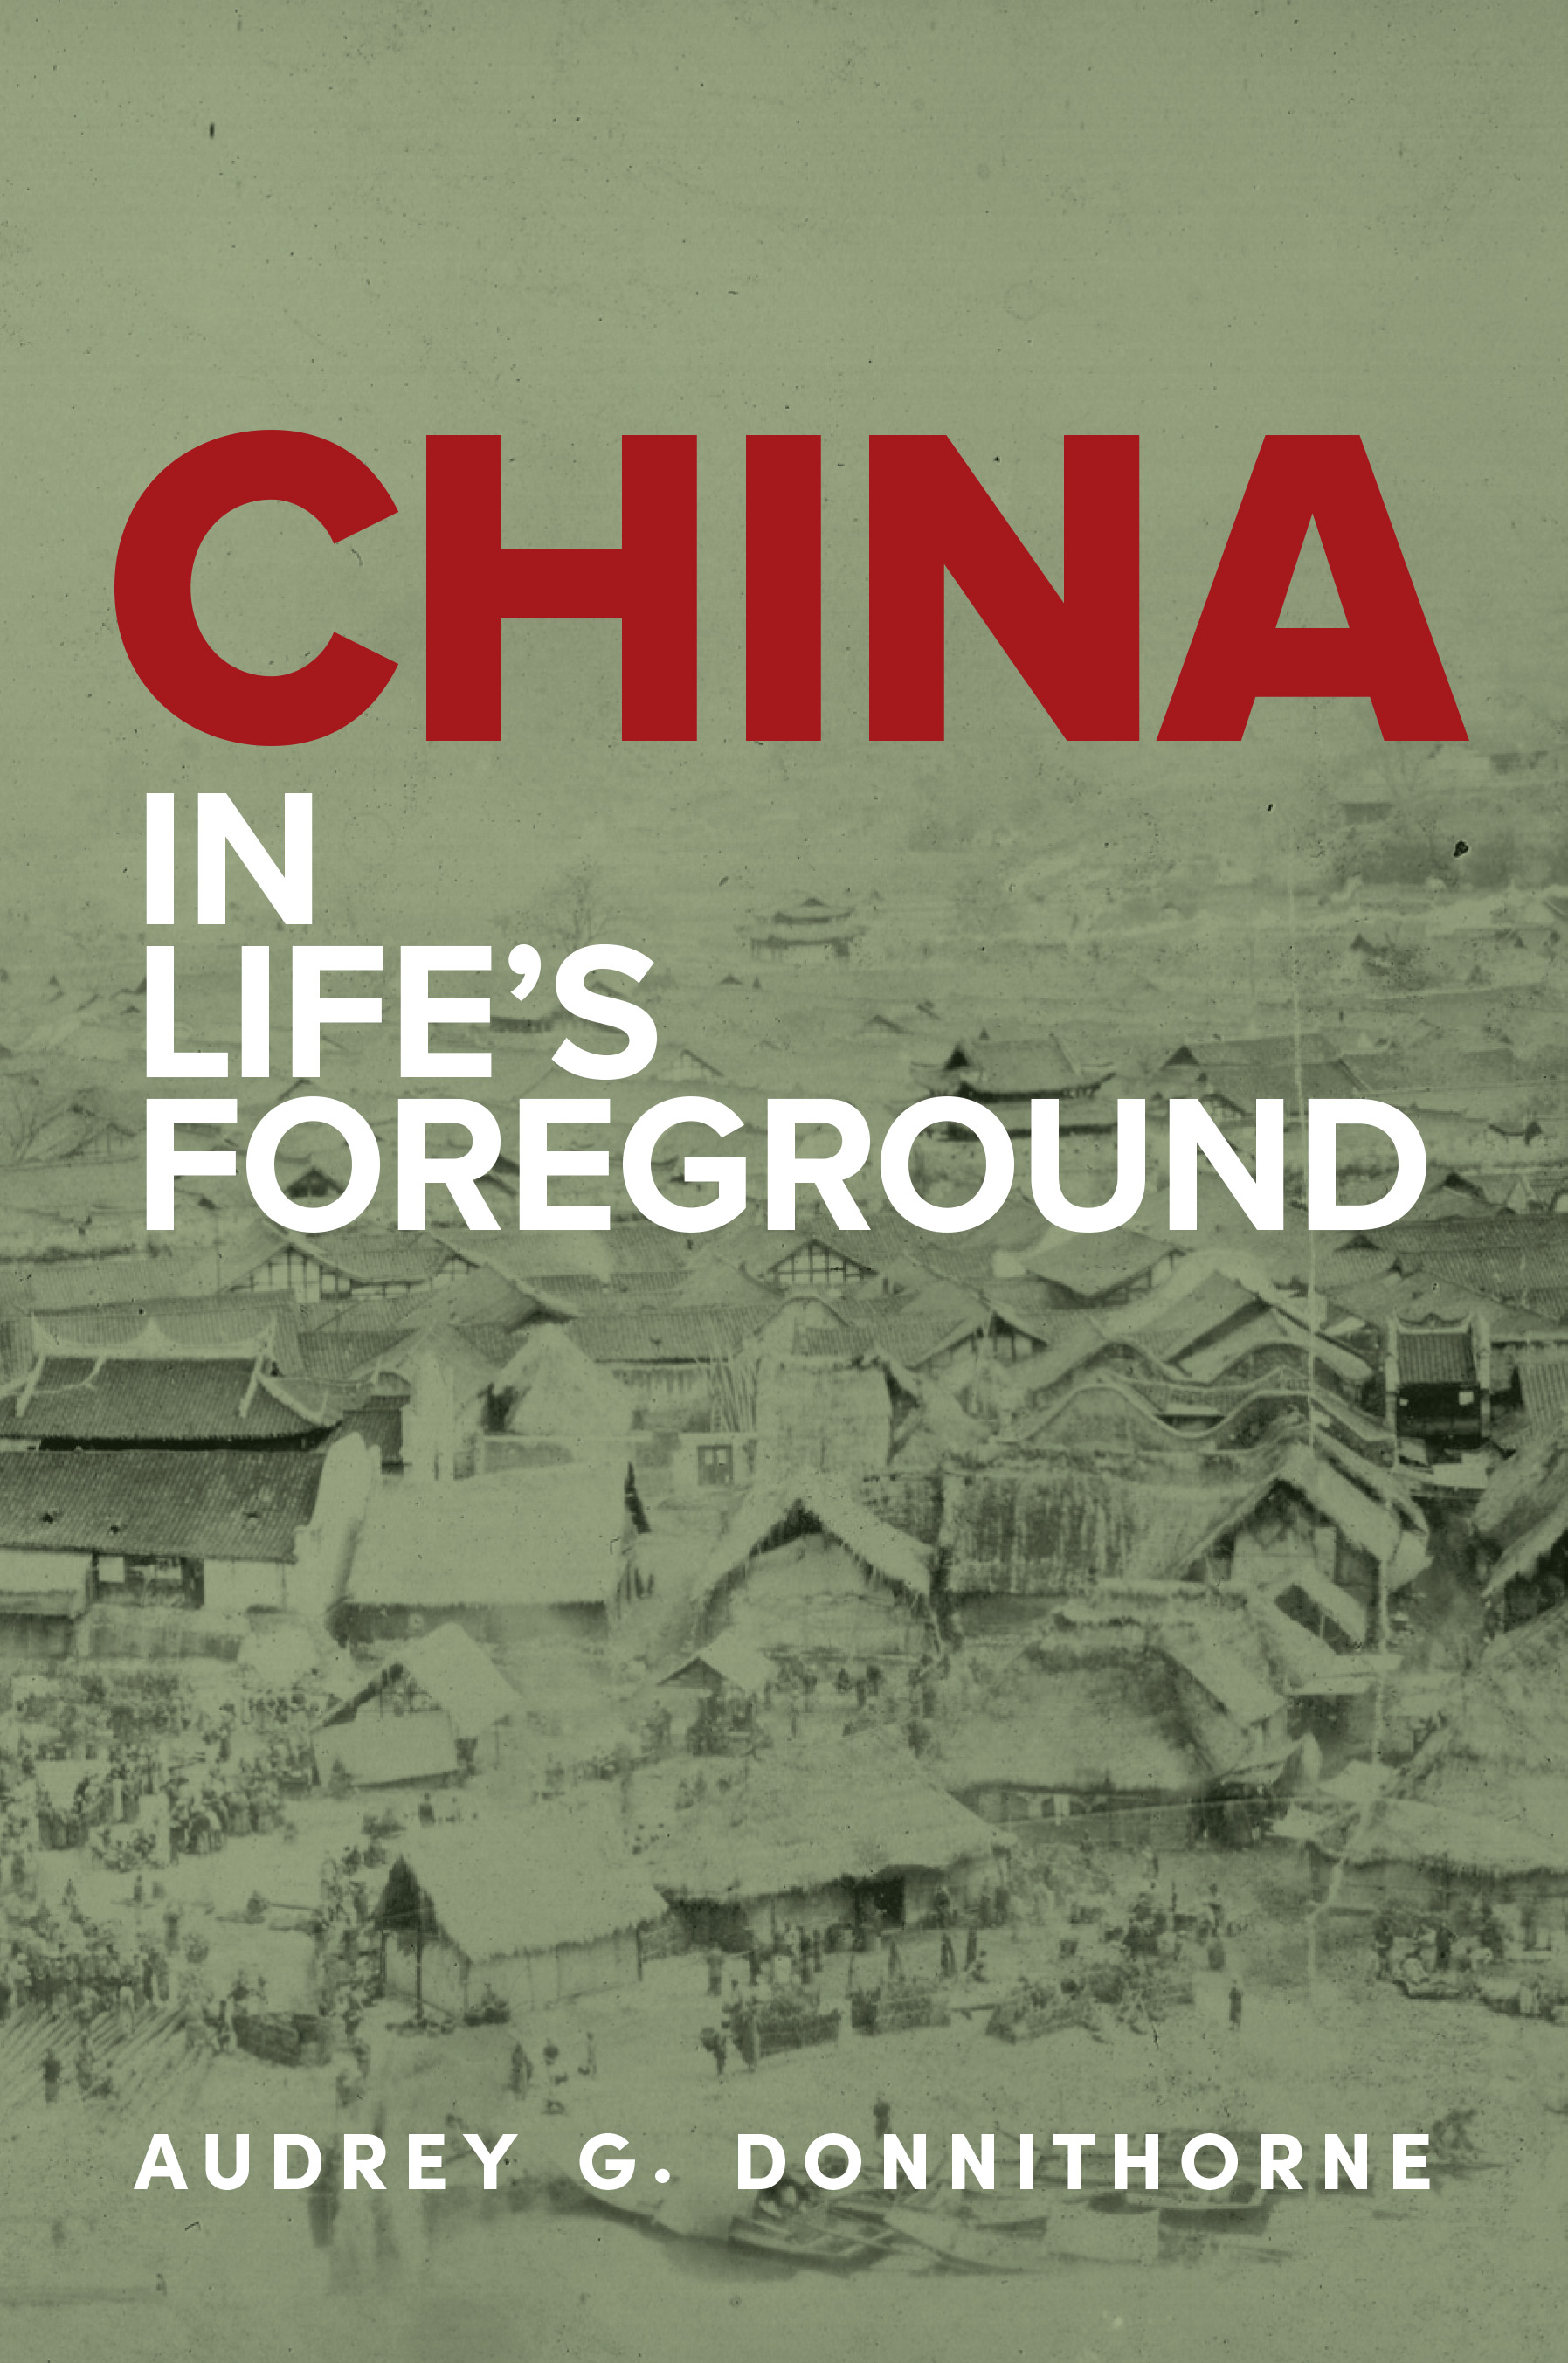 China In Life's Foreground / Audrey G Donnithorne